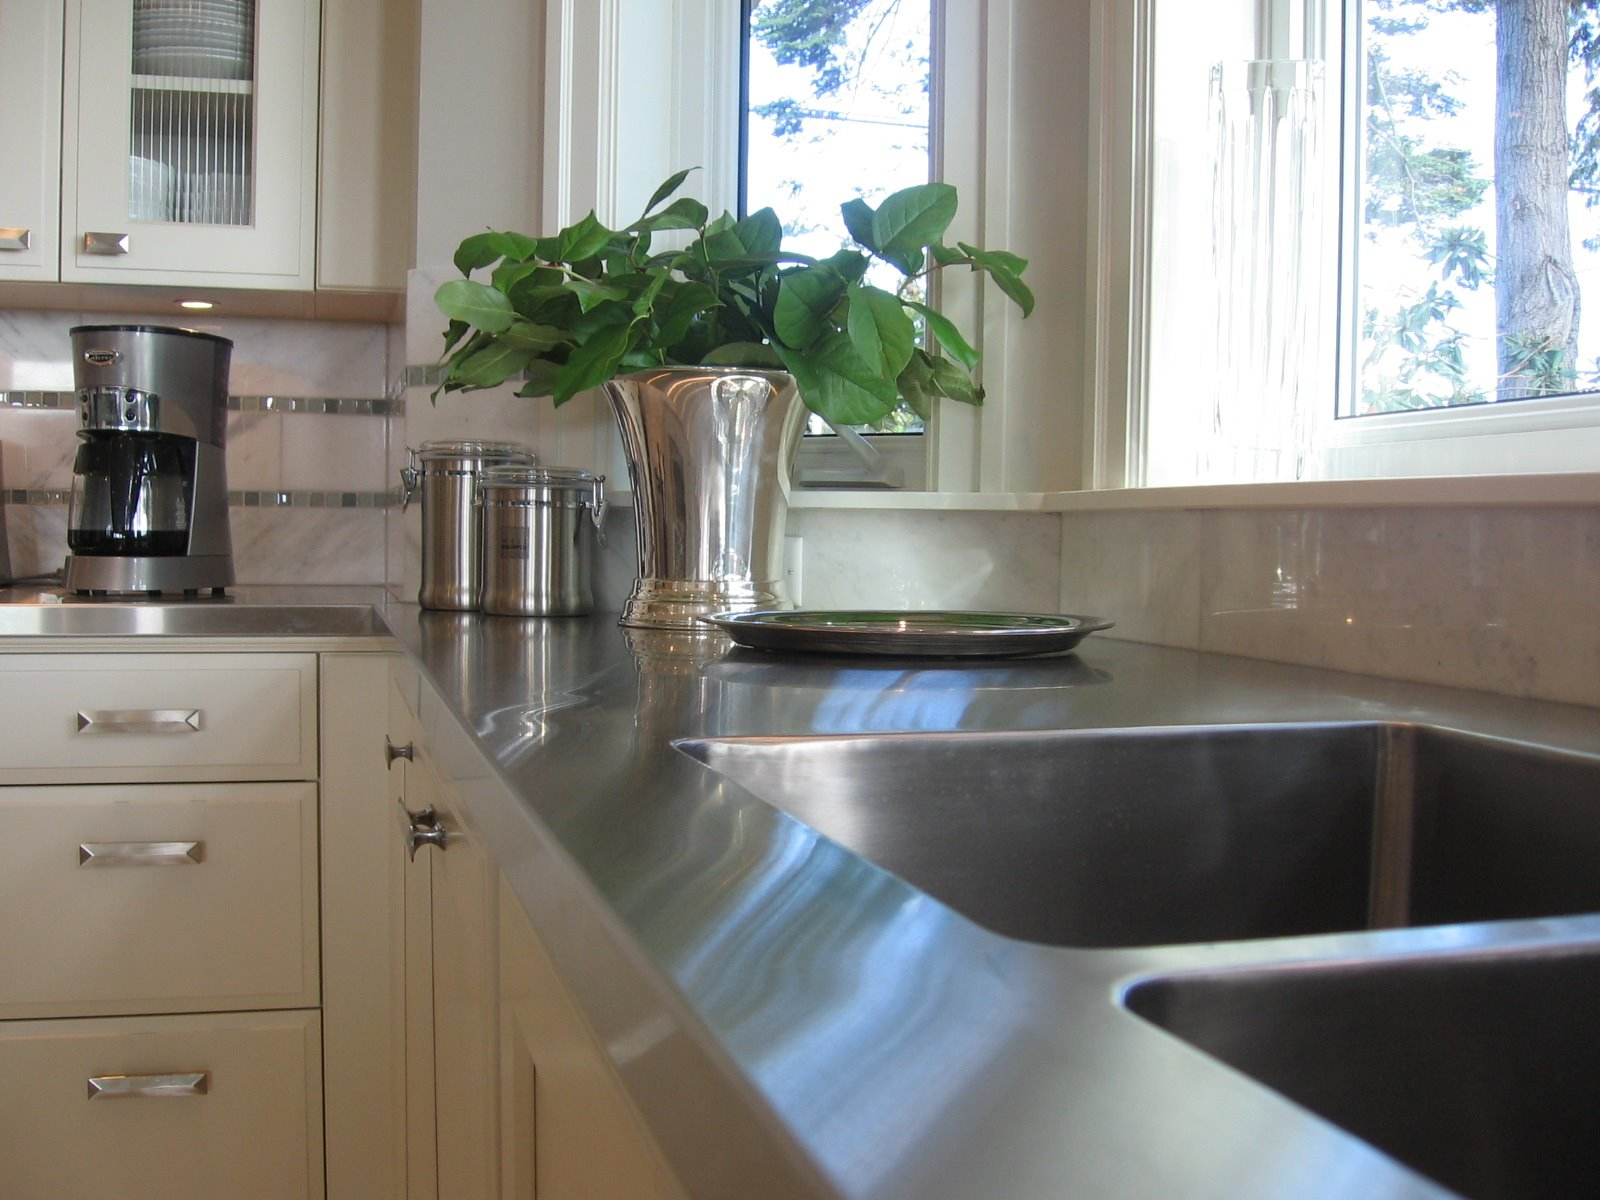 ... countertop materials can take the punishment a kitchen dishes out